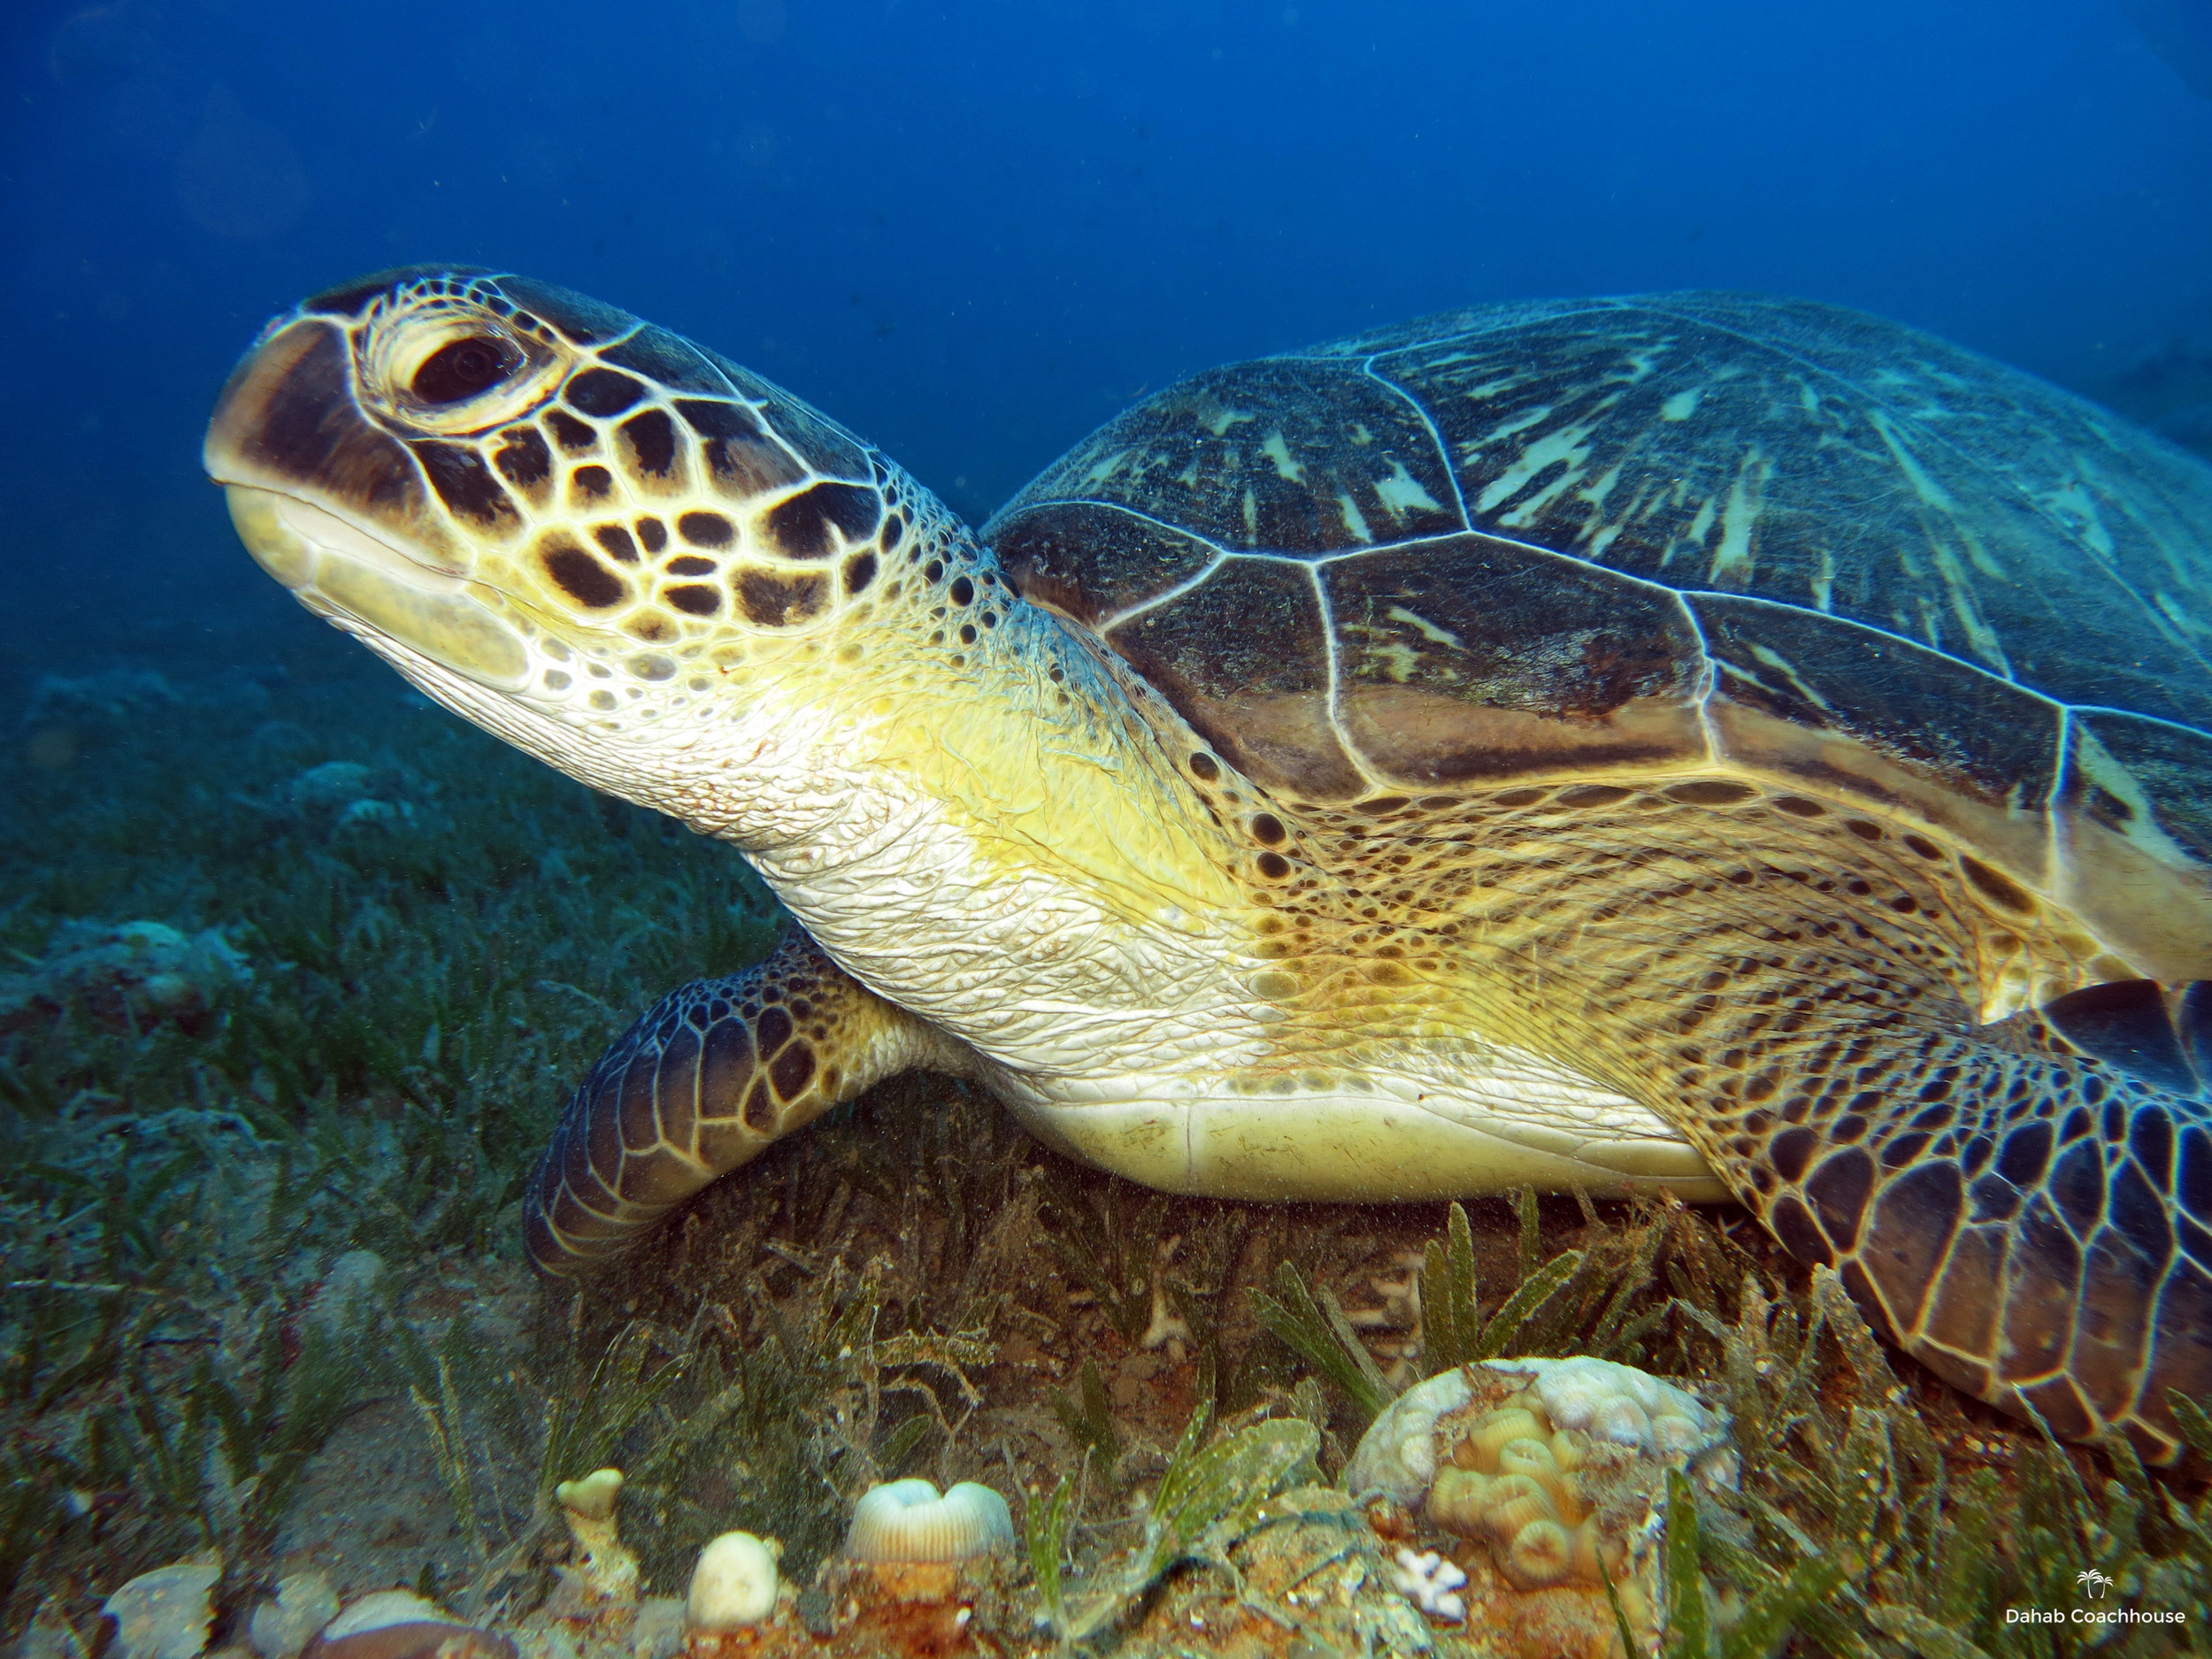 Dahab_Coachhouse_Egypt_Red_Sea_Diving_Beach_Accommodation_Holiday_Travel_Green_Turtle.JPG